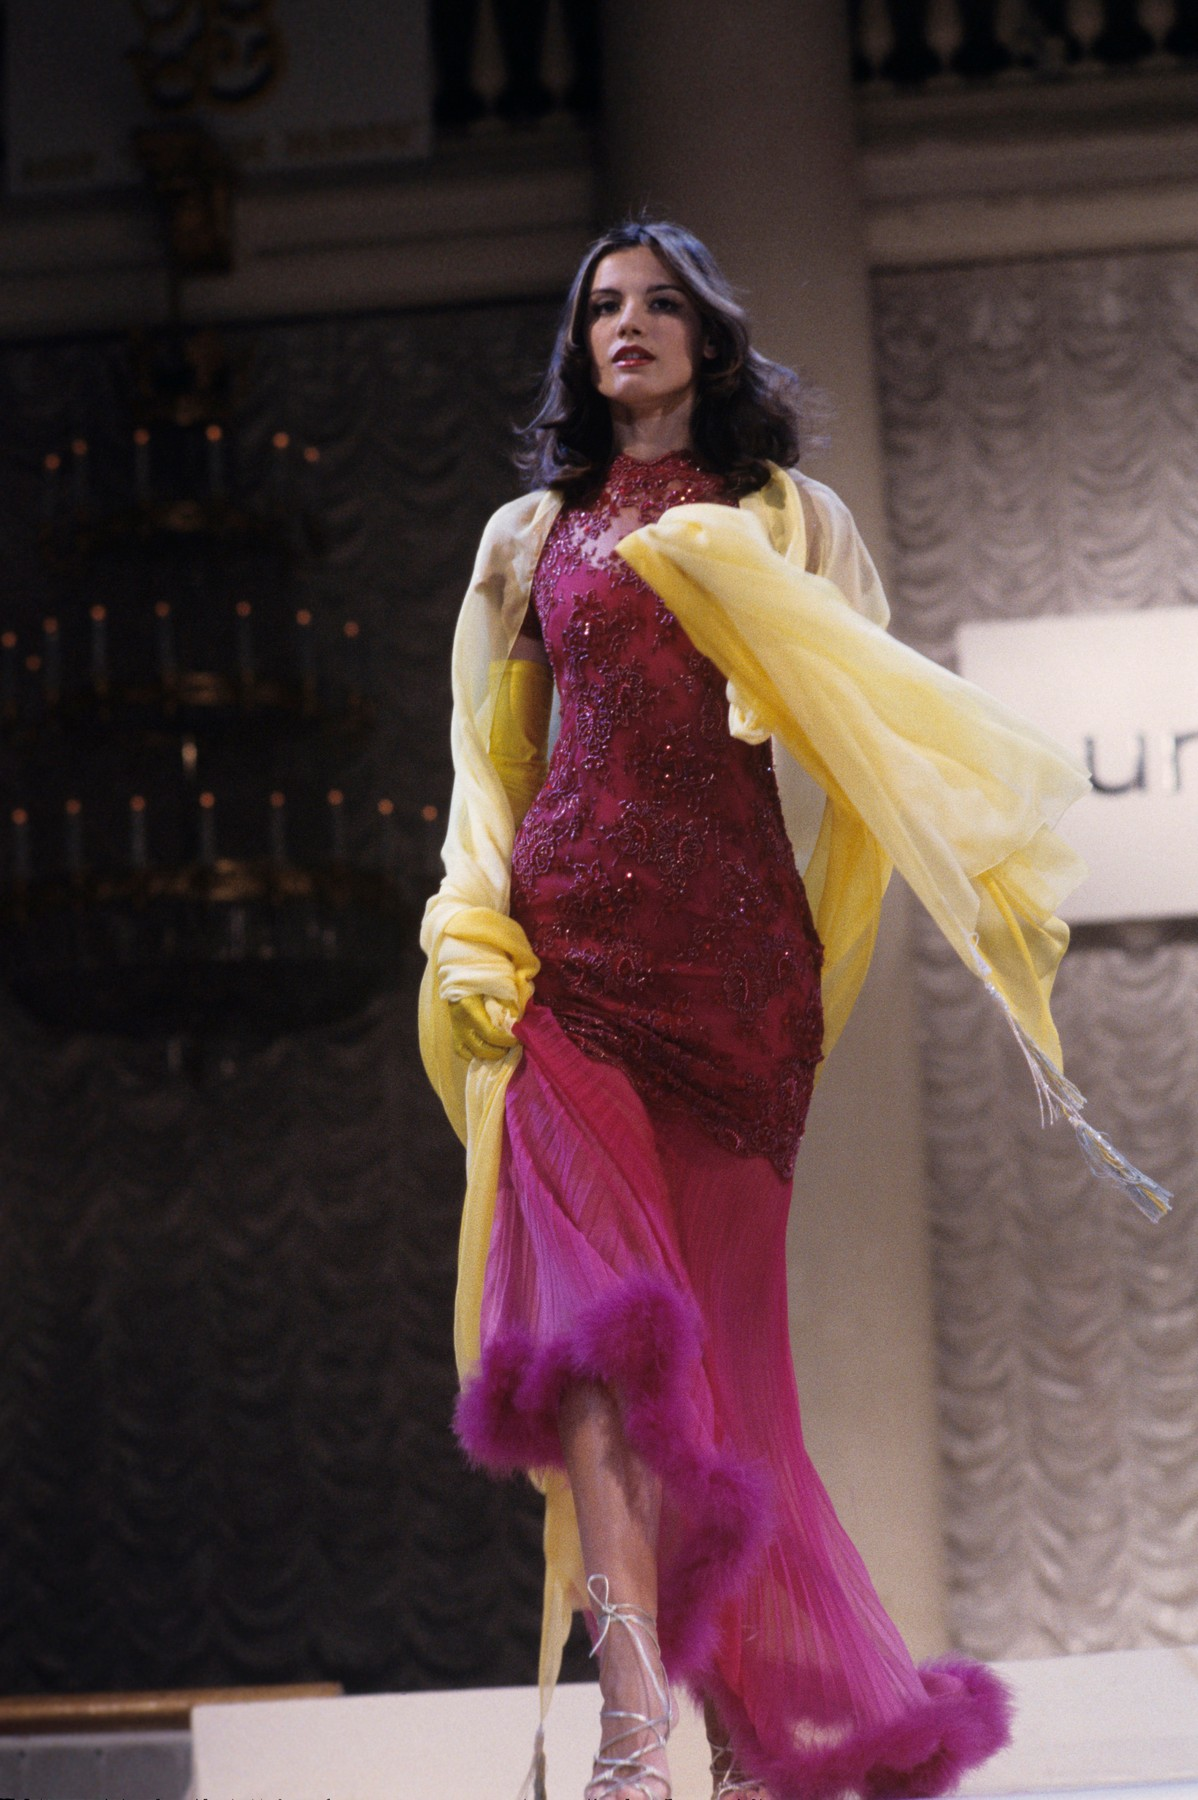 5851429 26.04.1996 Emanuel Ungaro's collection showcased at the Column Gall of the Unions House in Moscow. A beaded evening dress trimmed with fur., Image: 427480431, License: Rights-managed, Restrictions: , Model Release: no, Credit line: K. Kartashyan / Sputnik / Profimedia